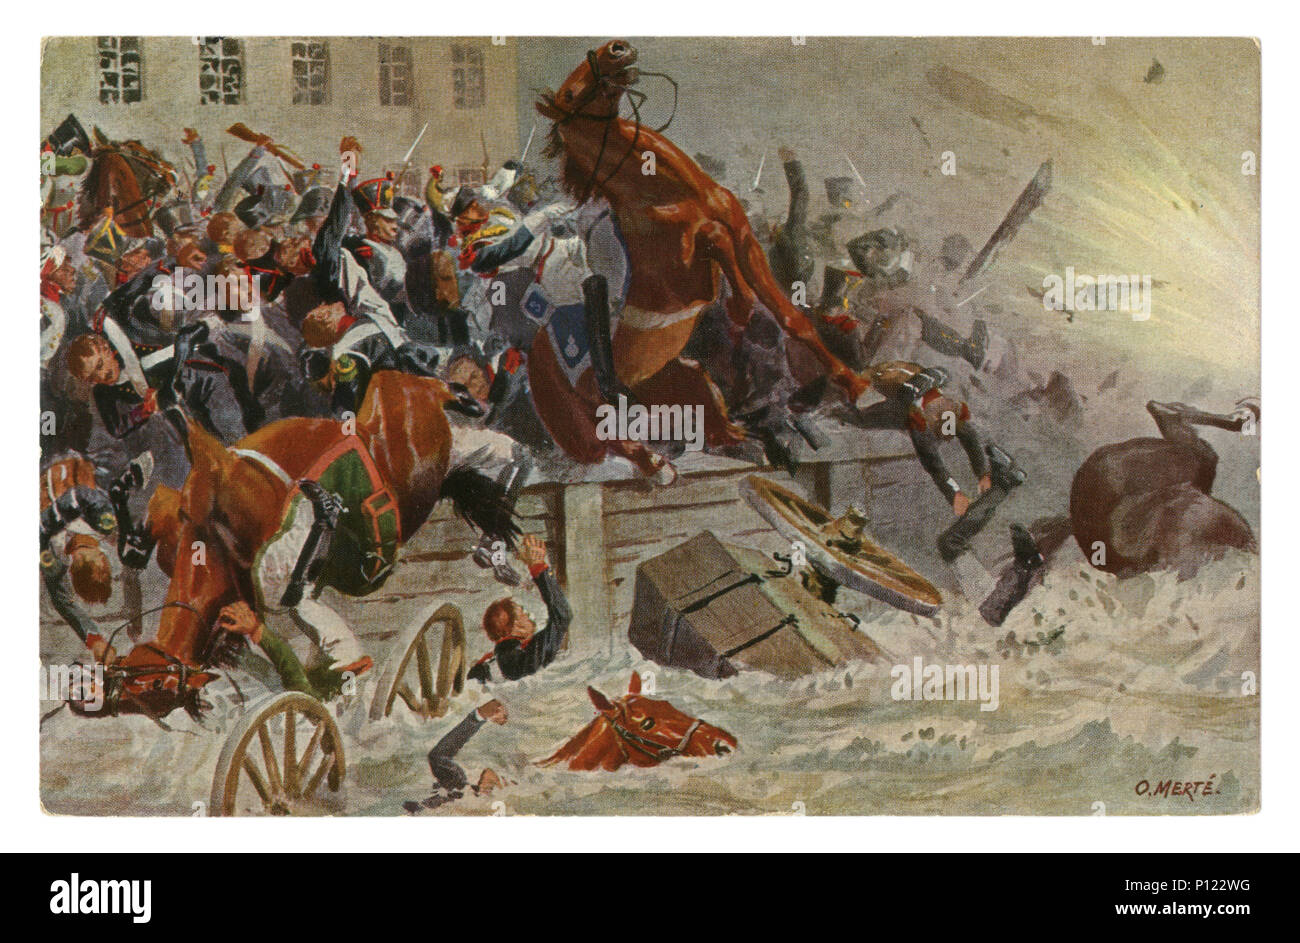 German historical postcard: The explosion of the bridge of the Elster full the retreating French troops.  Battle of Leipzig, October 19, 1813, Germany - Stock Image